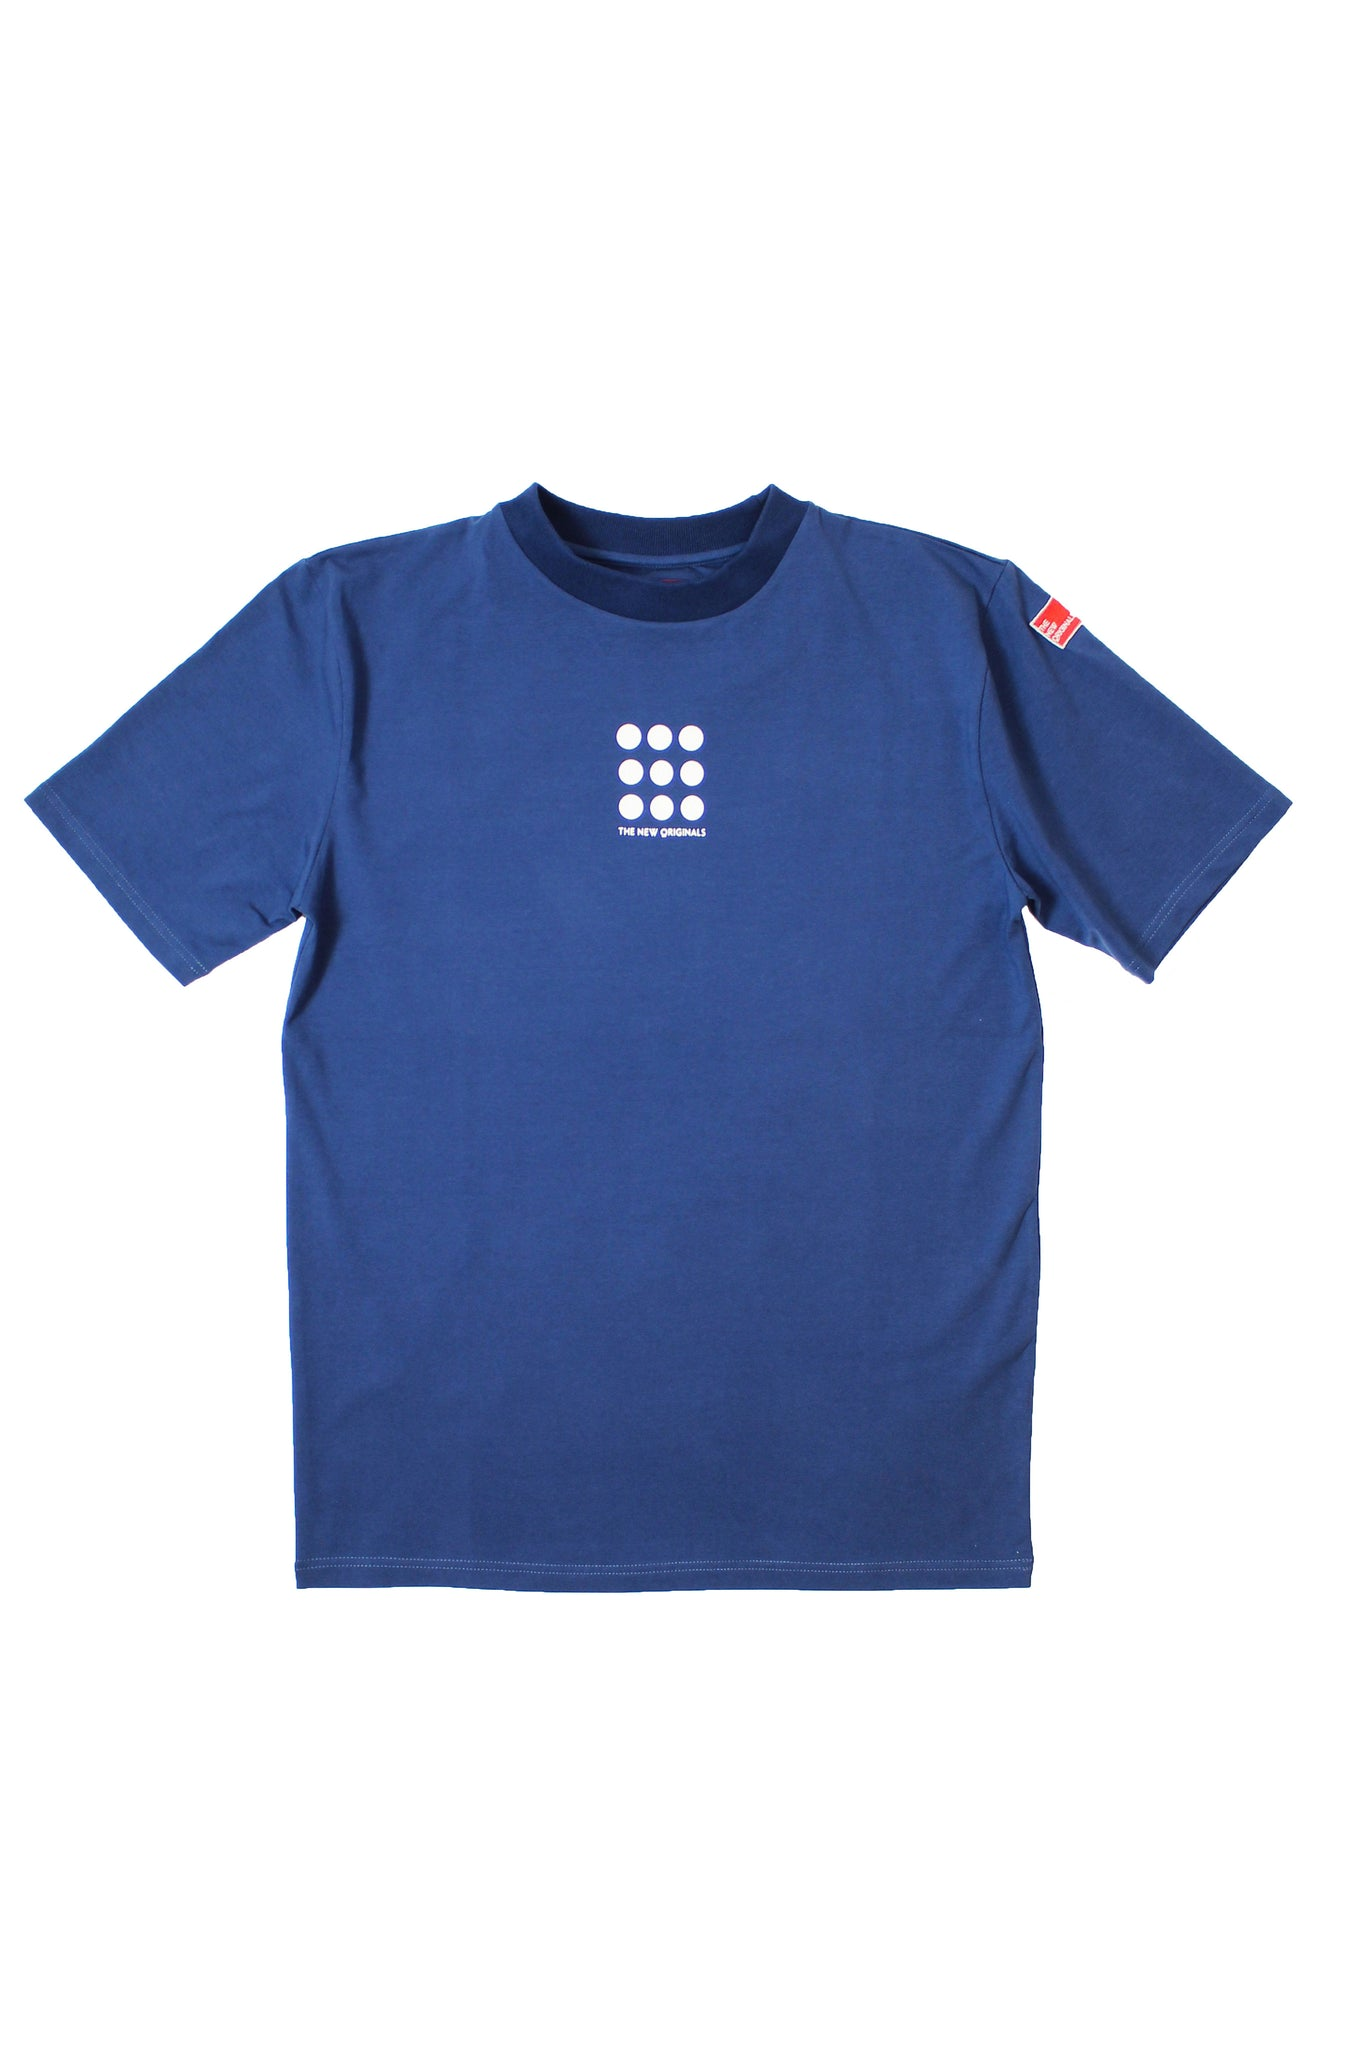 9-DOTS Tee | Navy/White